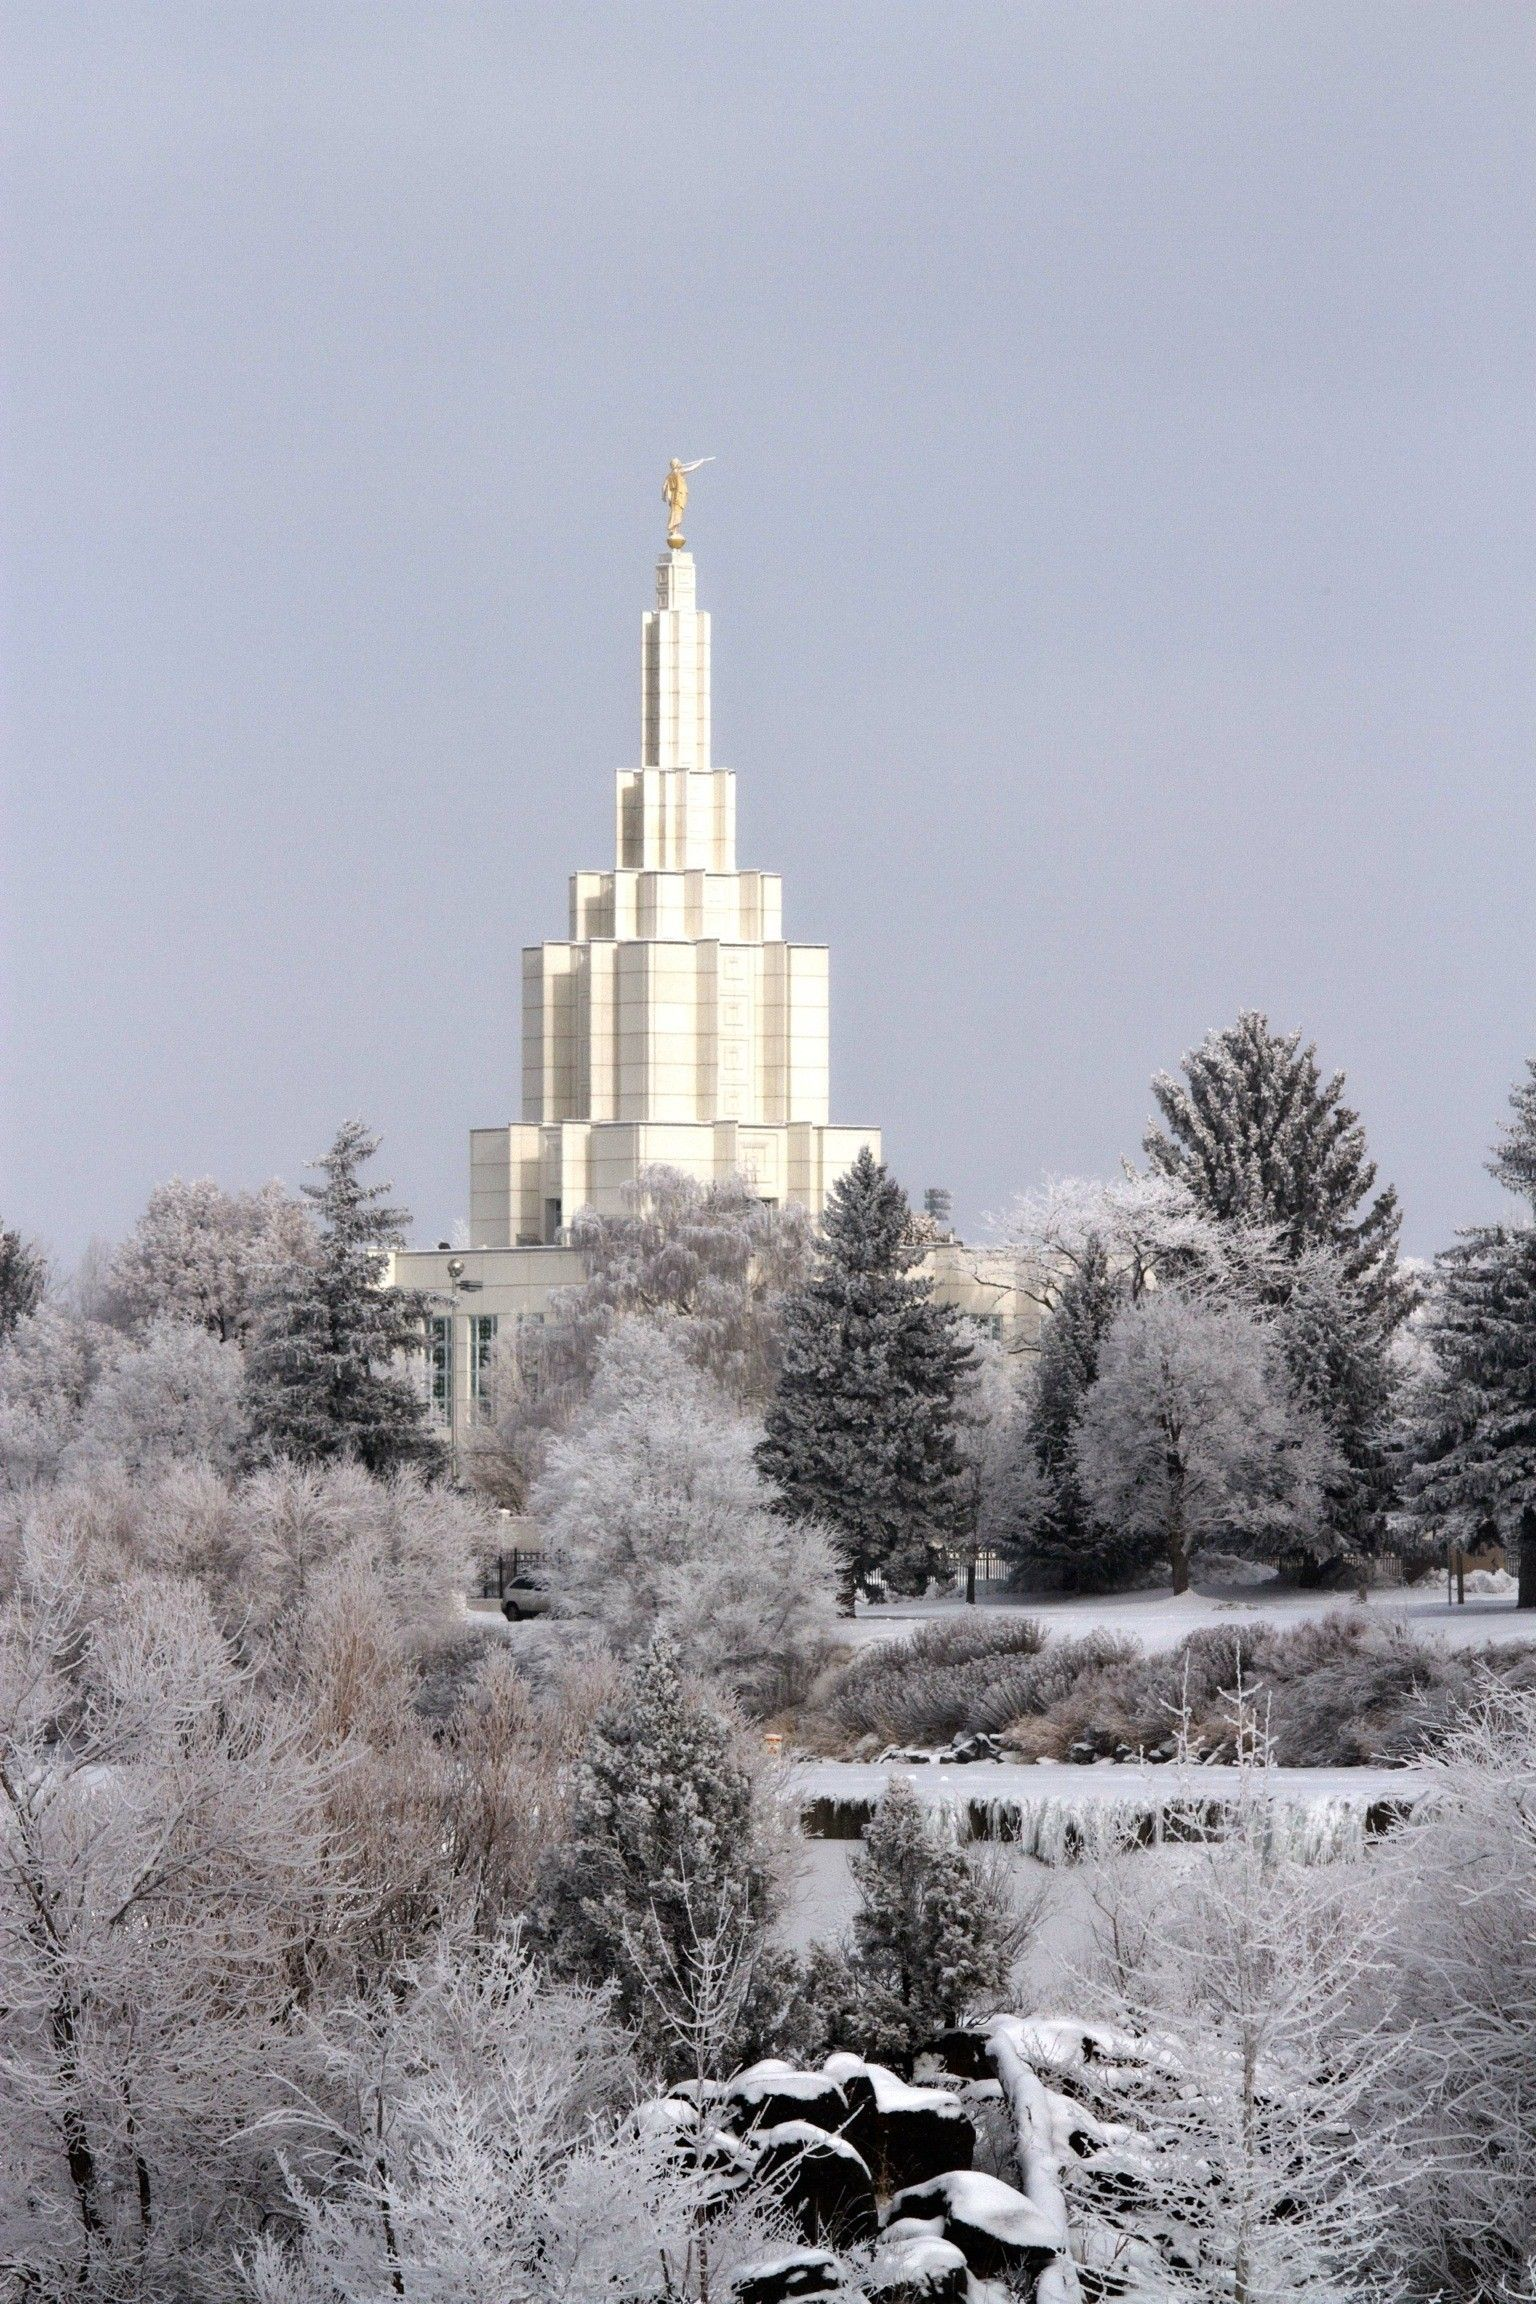 The spire of the Idaho Falls Idaho Temple in the winter.